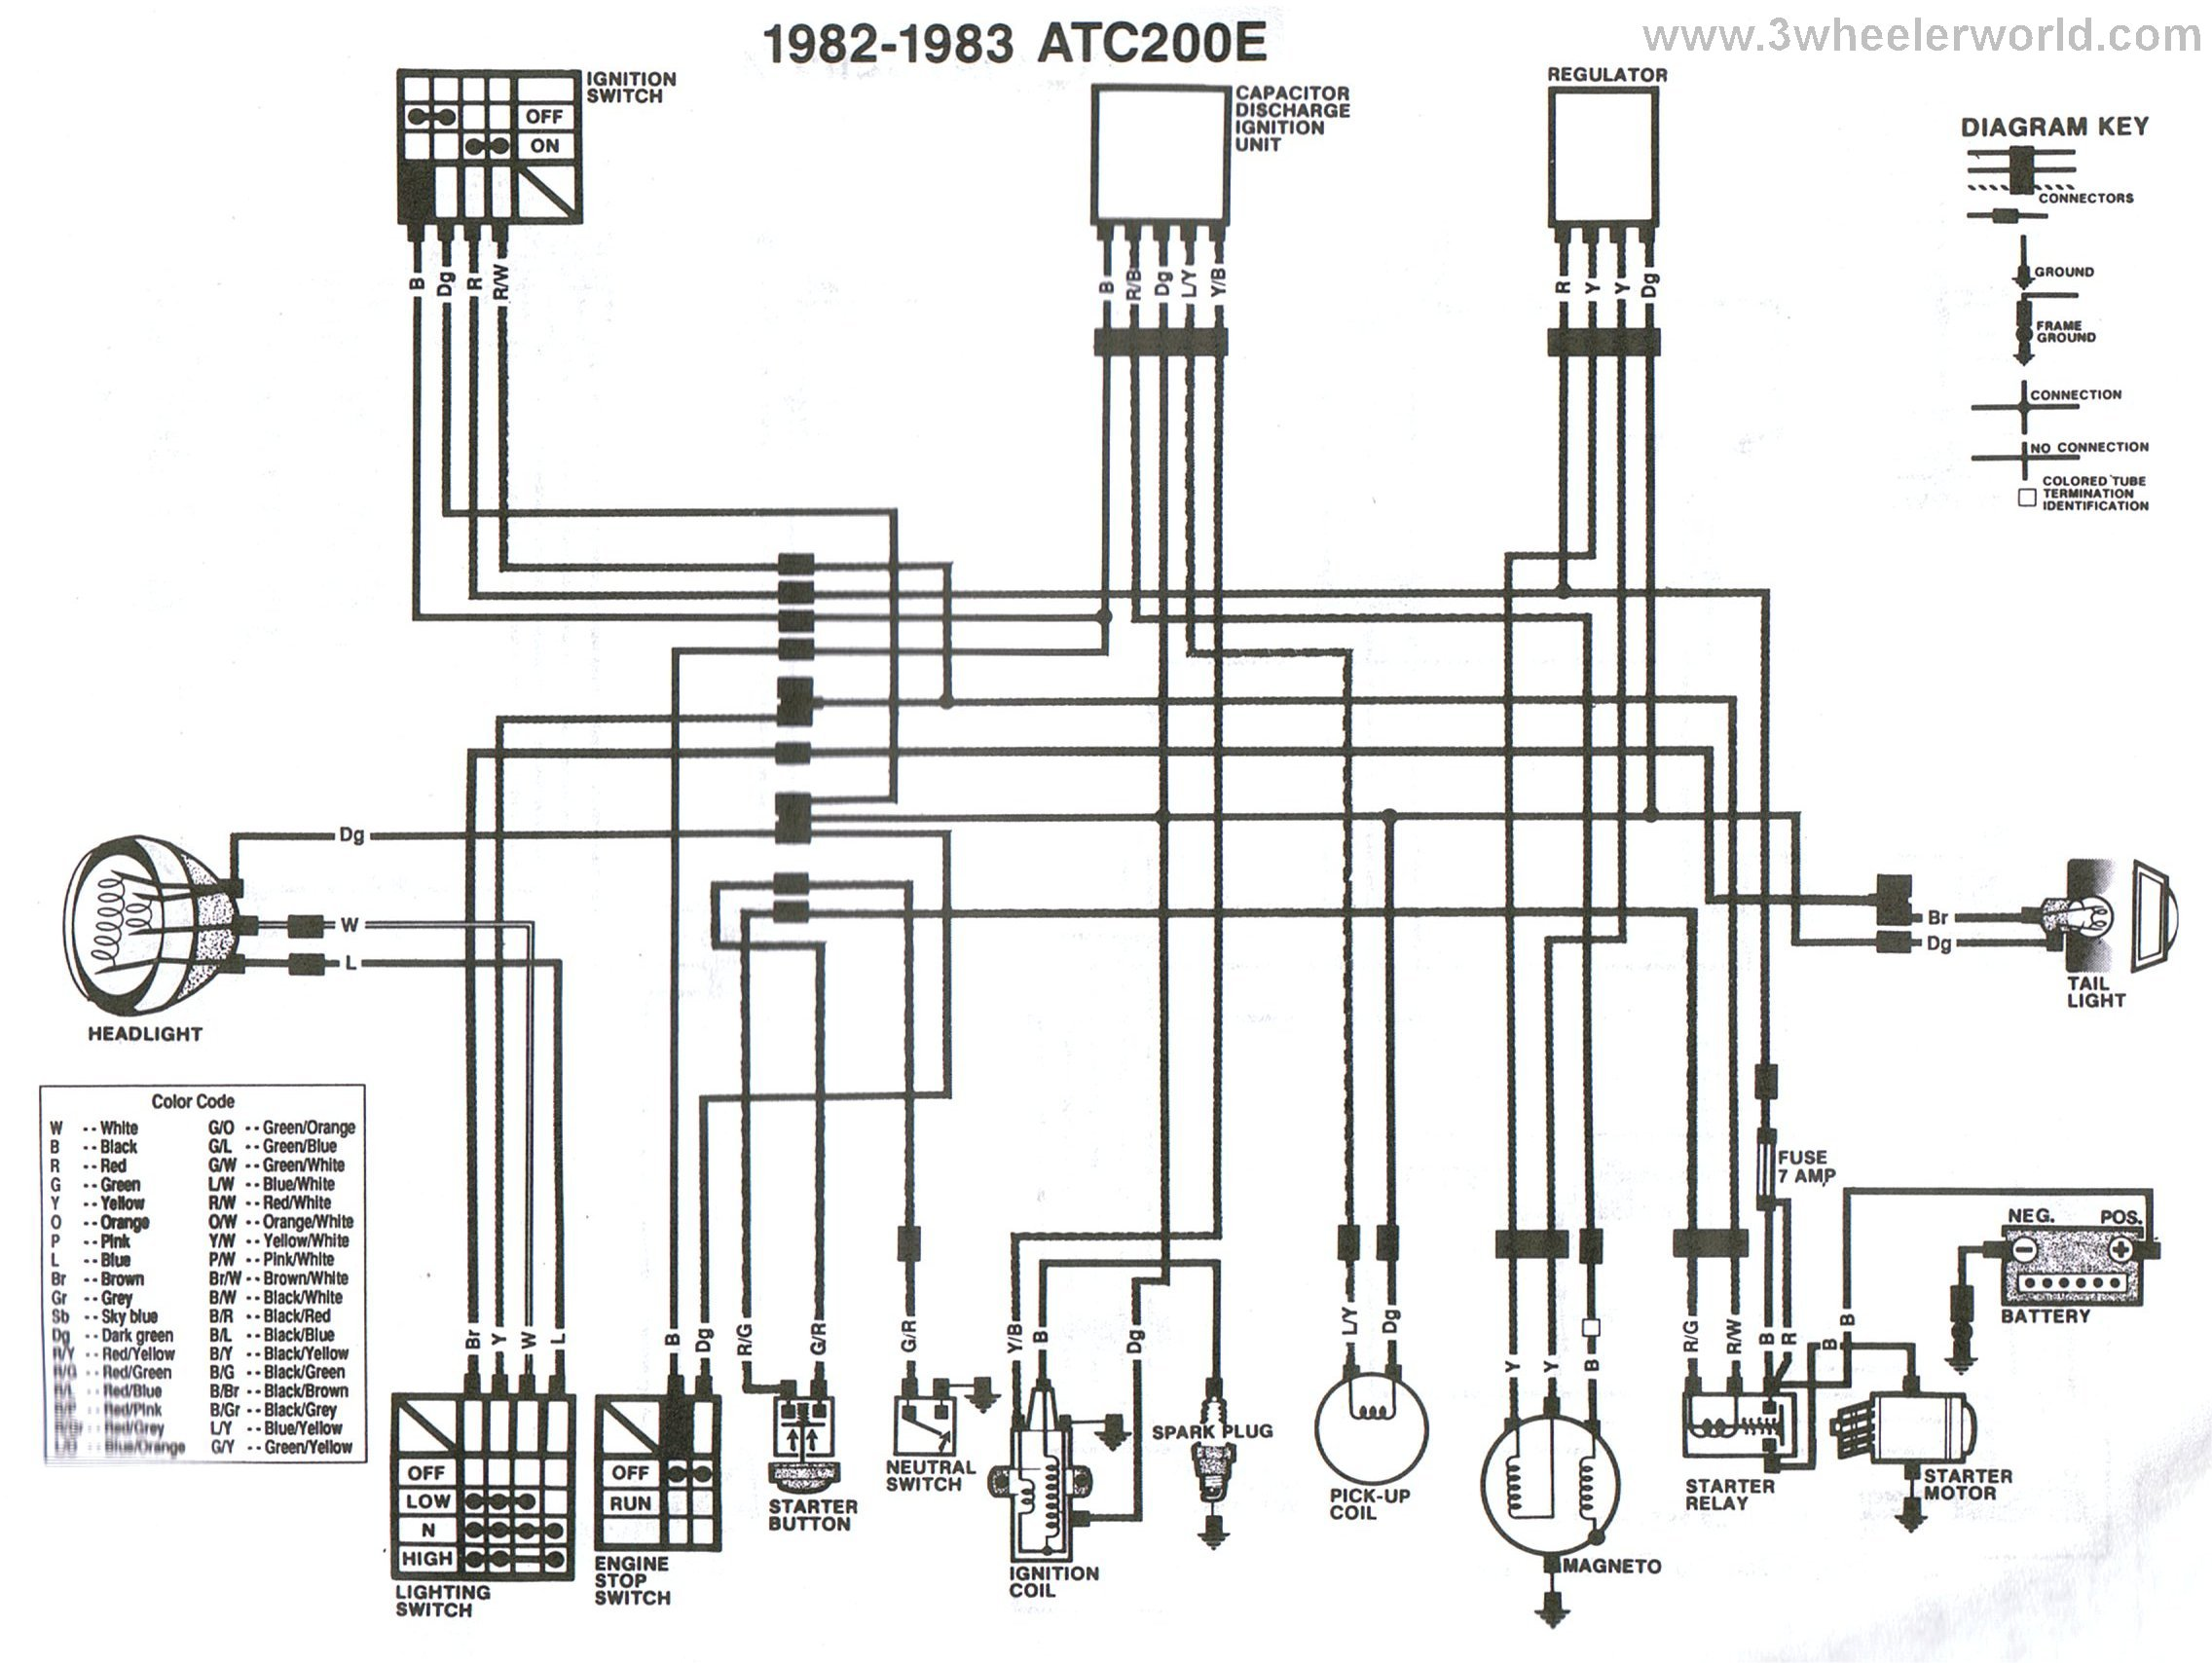 WiringHonda on kawasaki 300 atv motor schematic